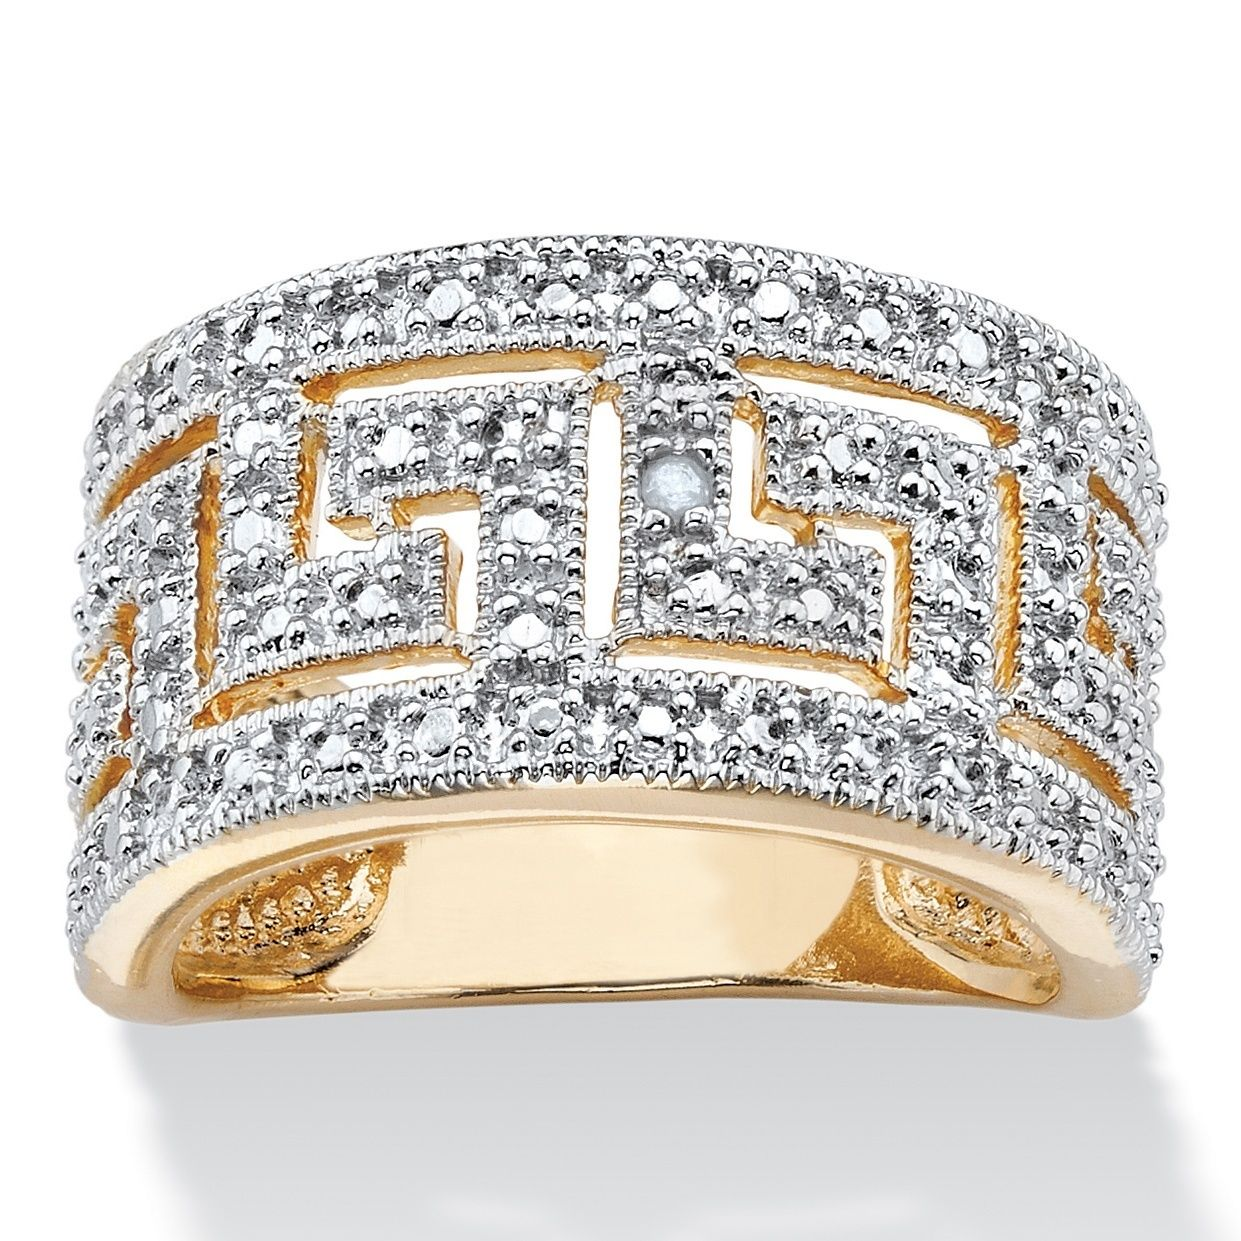 Palm beach jewelry palmbeach 18k yellow gold overlay round diamond palm beach jewelry palmbeach 18k yellow gold overlay round diamond accent greek key cutout dome ring biocorpaavc